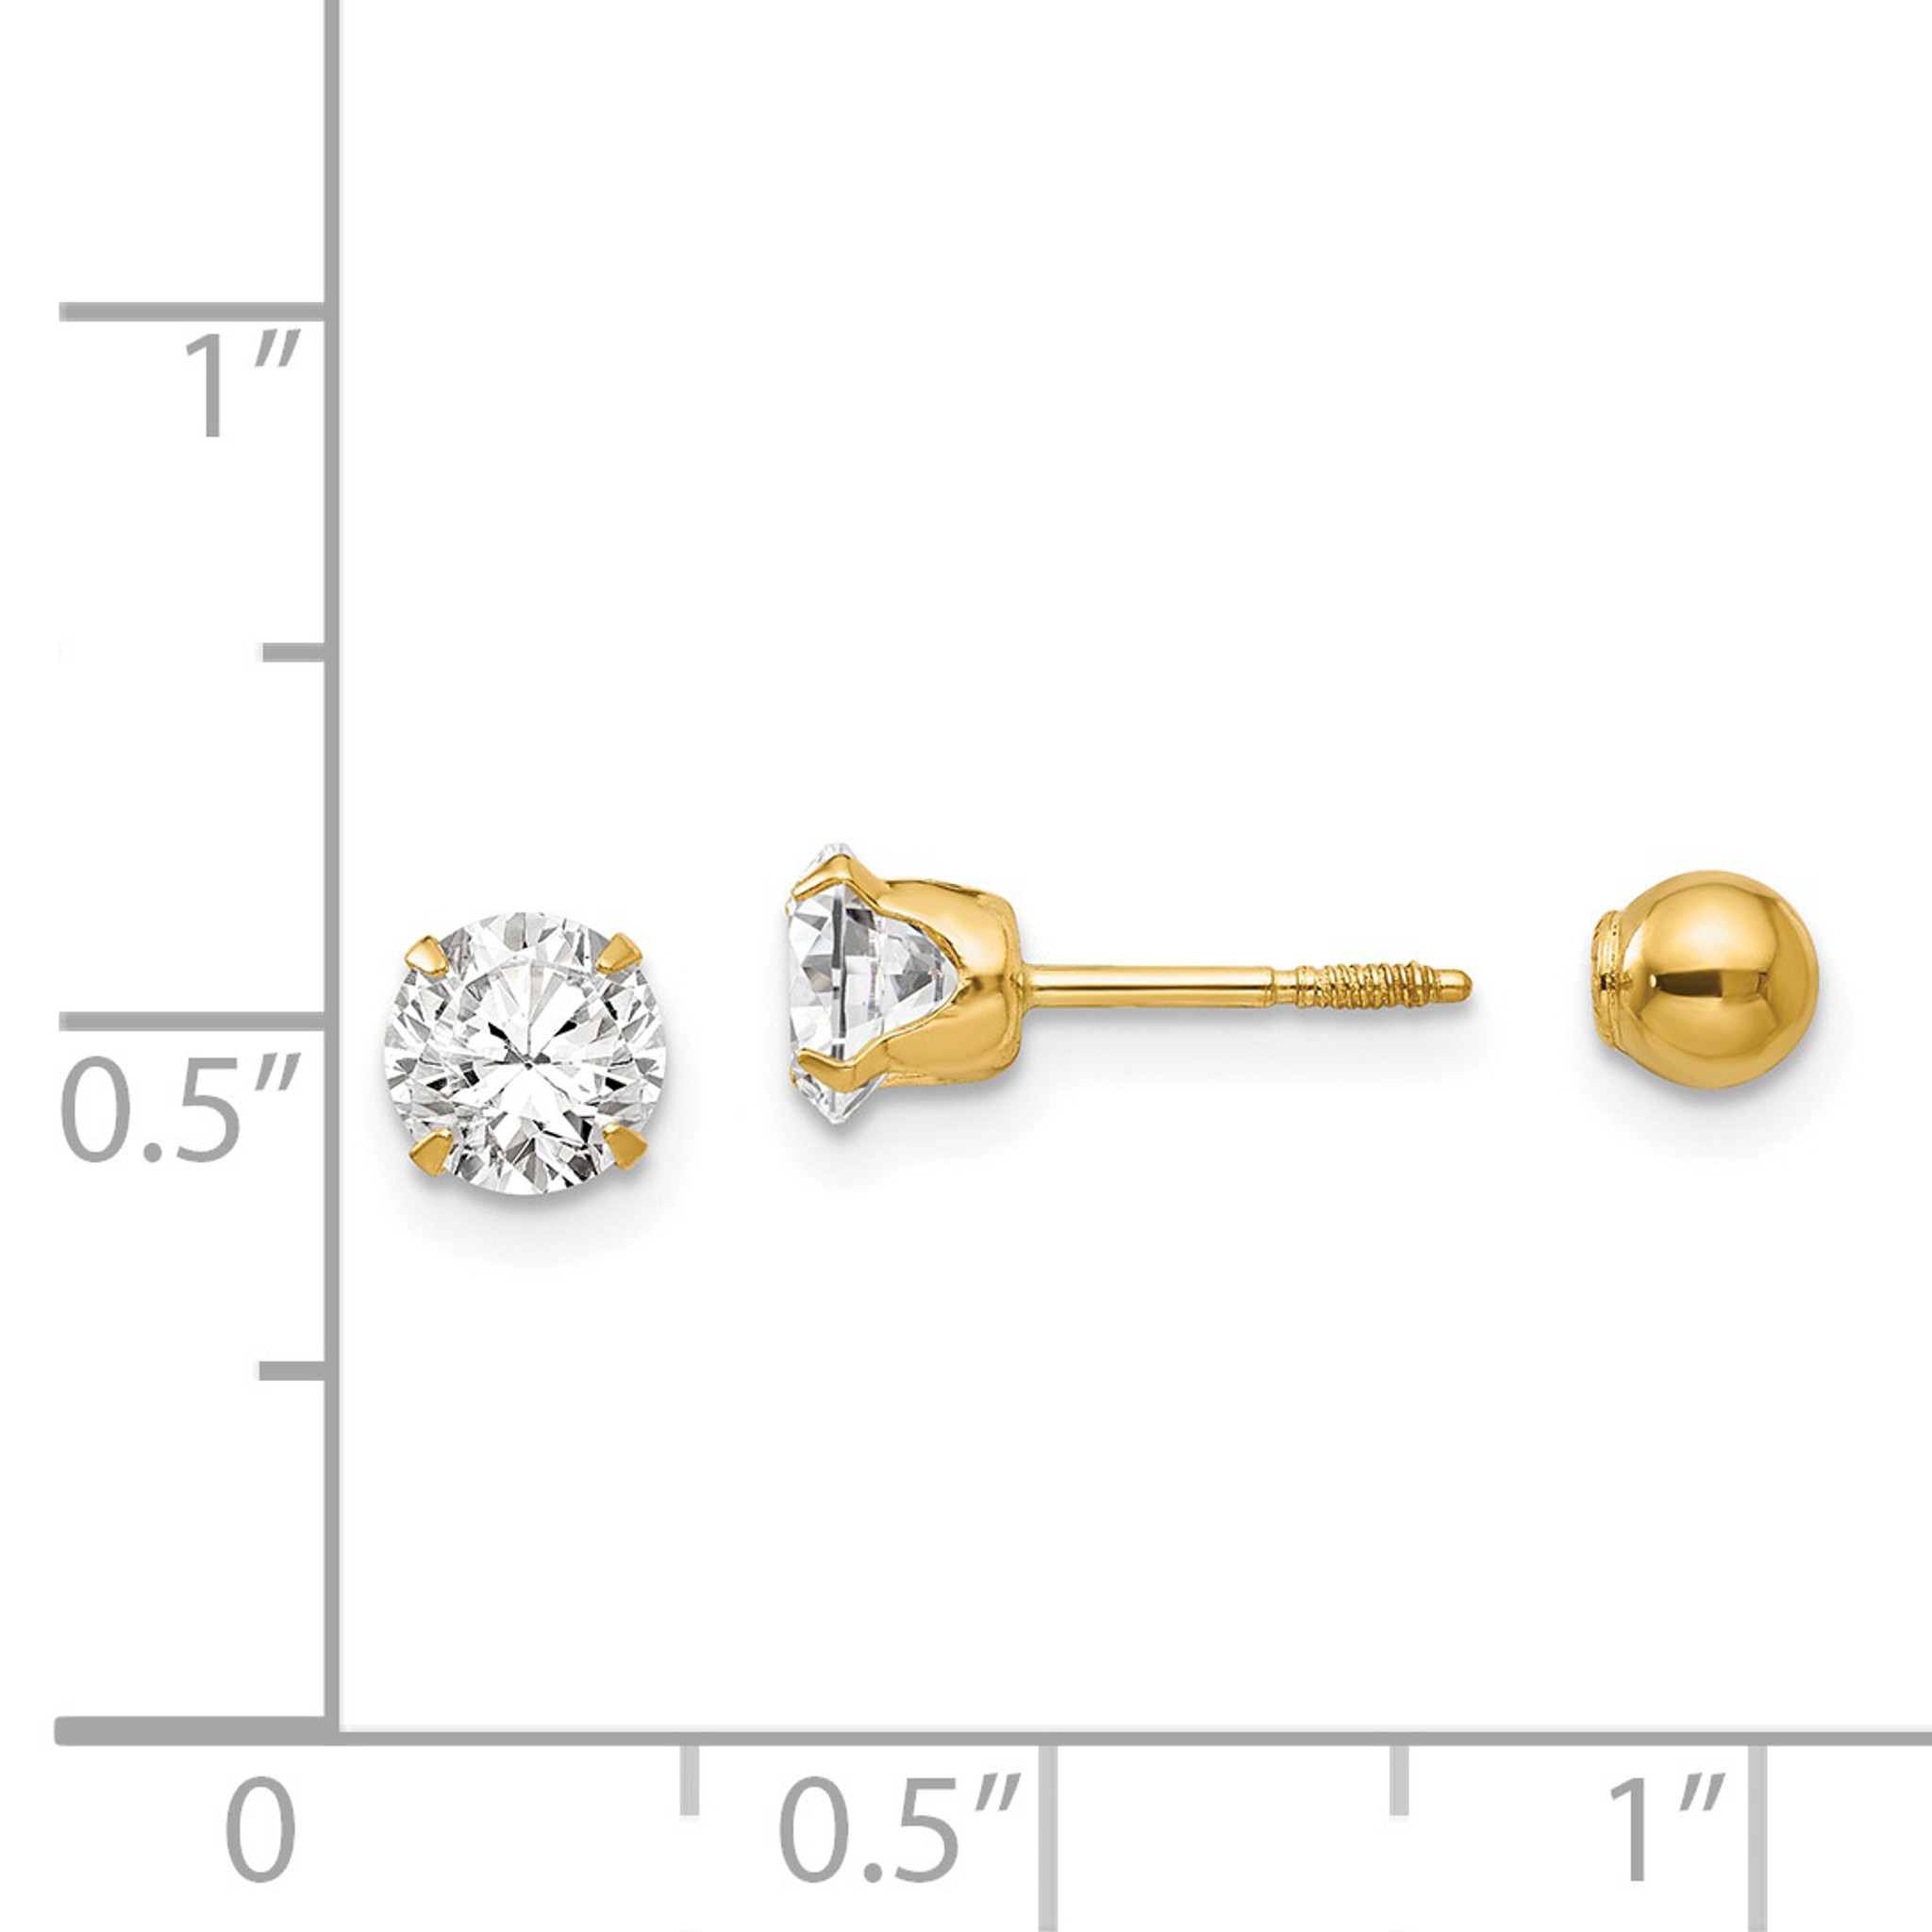 14K White Gold Jewelry Ball Earrings Hollow 5 mm 5 mm Madi K Polished 5mm Ball Post Earrings